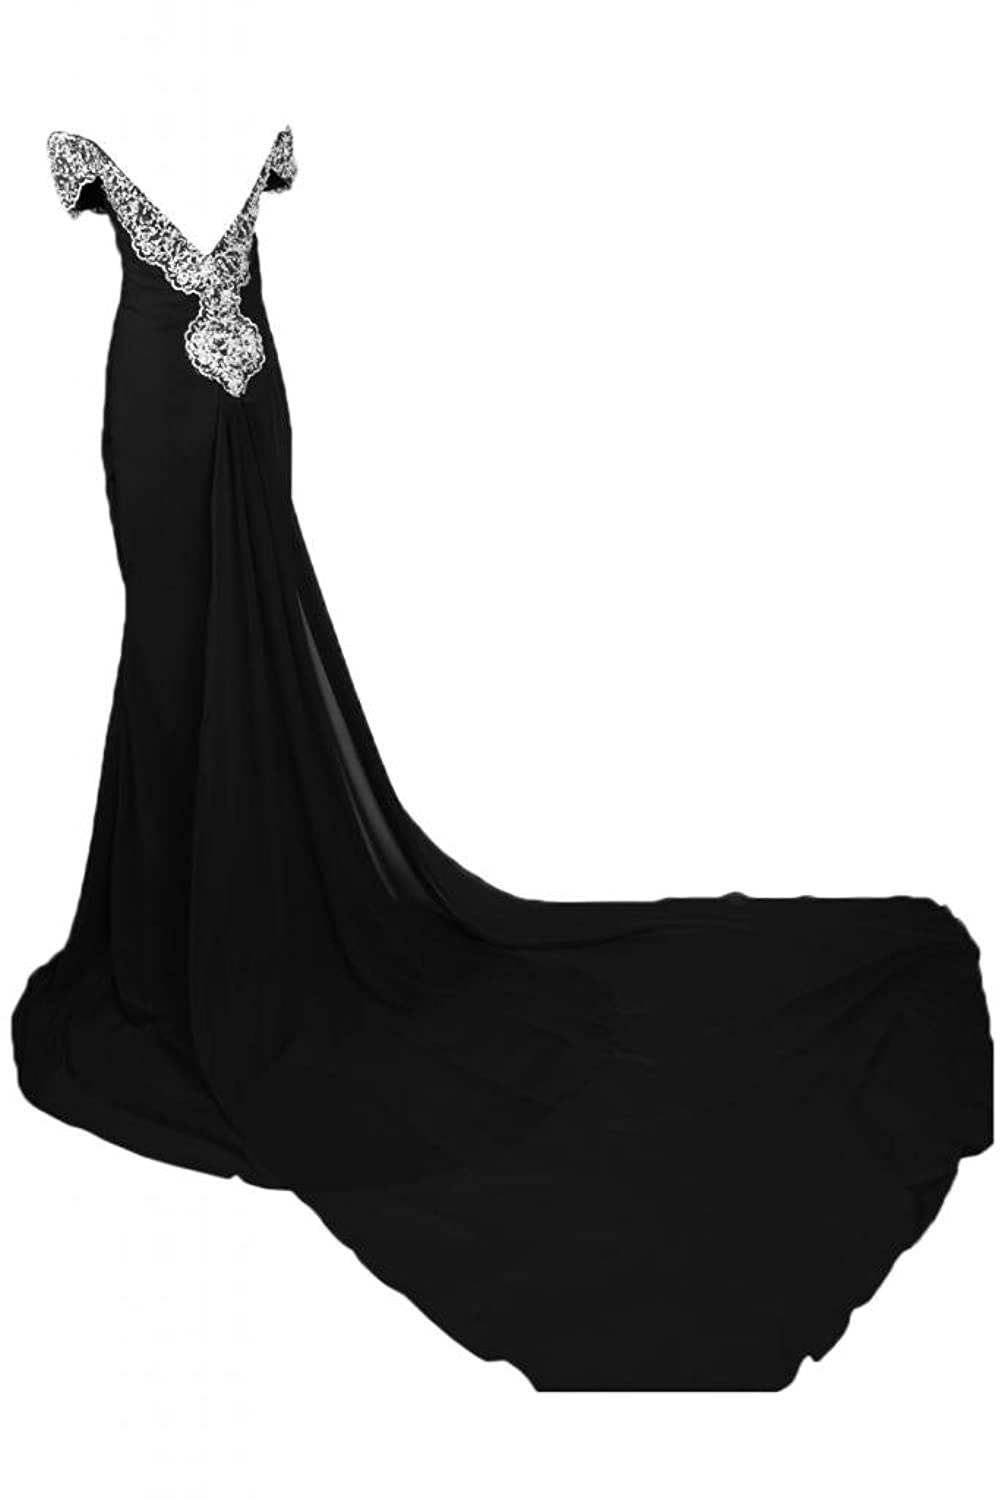 Sunvary Romantic Off-the-shoulder Neckline Evening Dress Maxi Pageant Dresses for Ladies